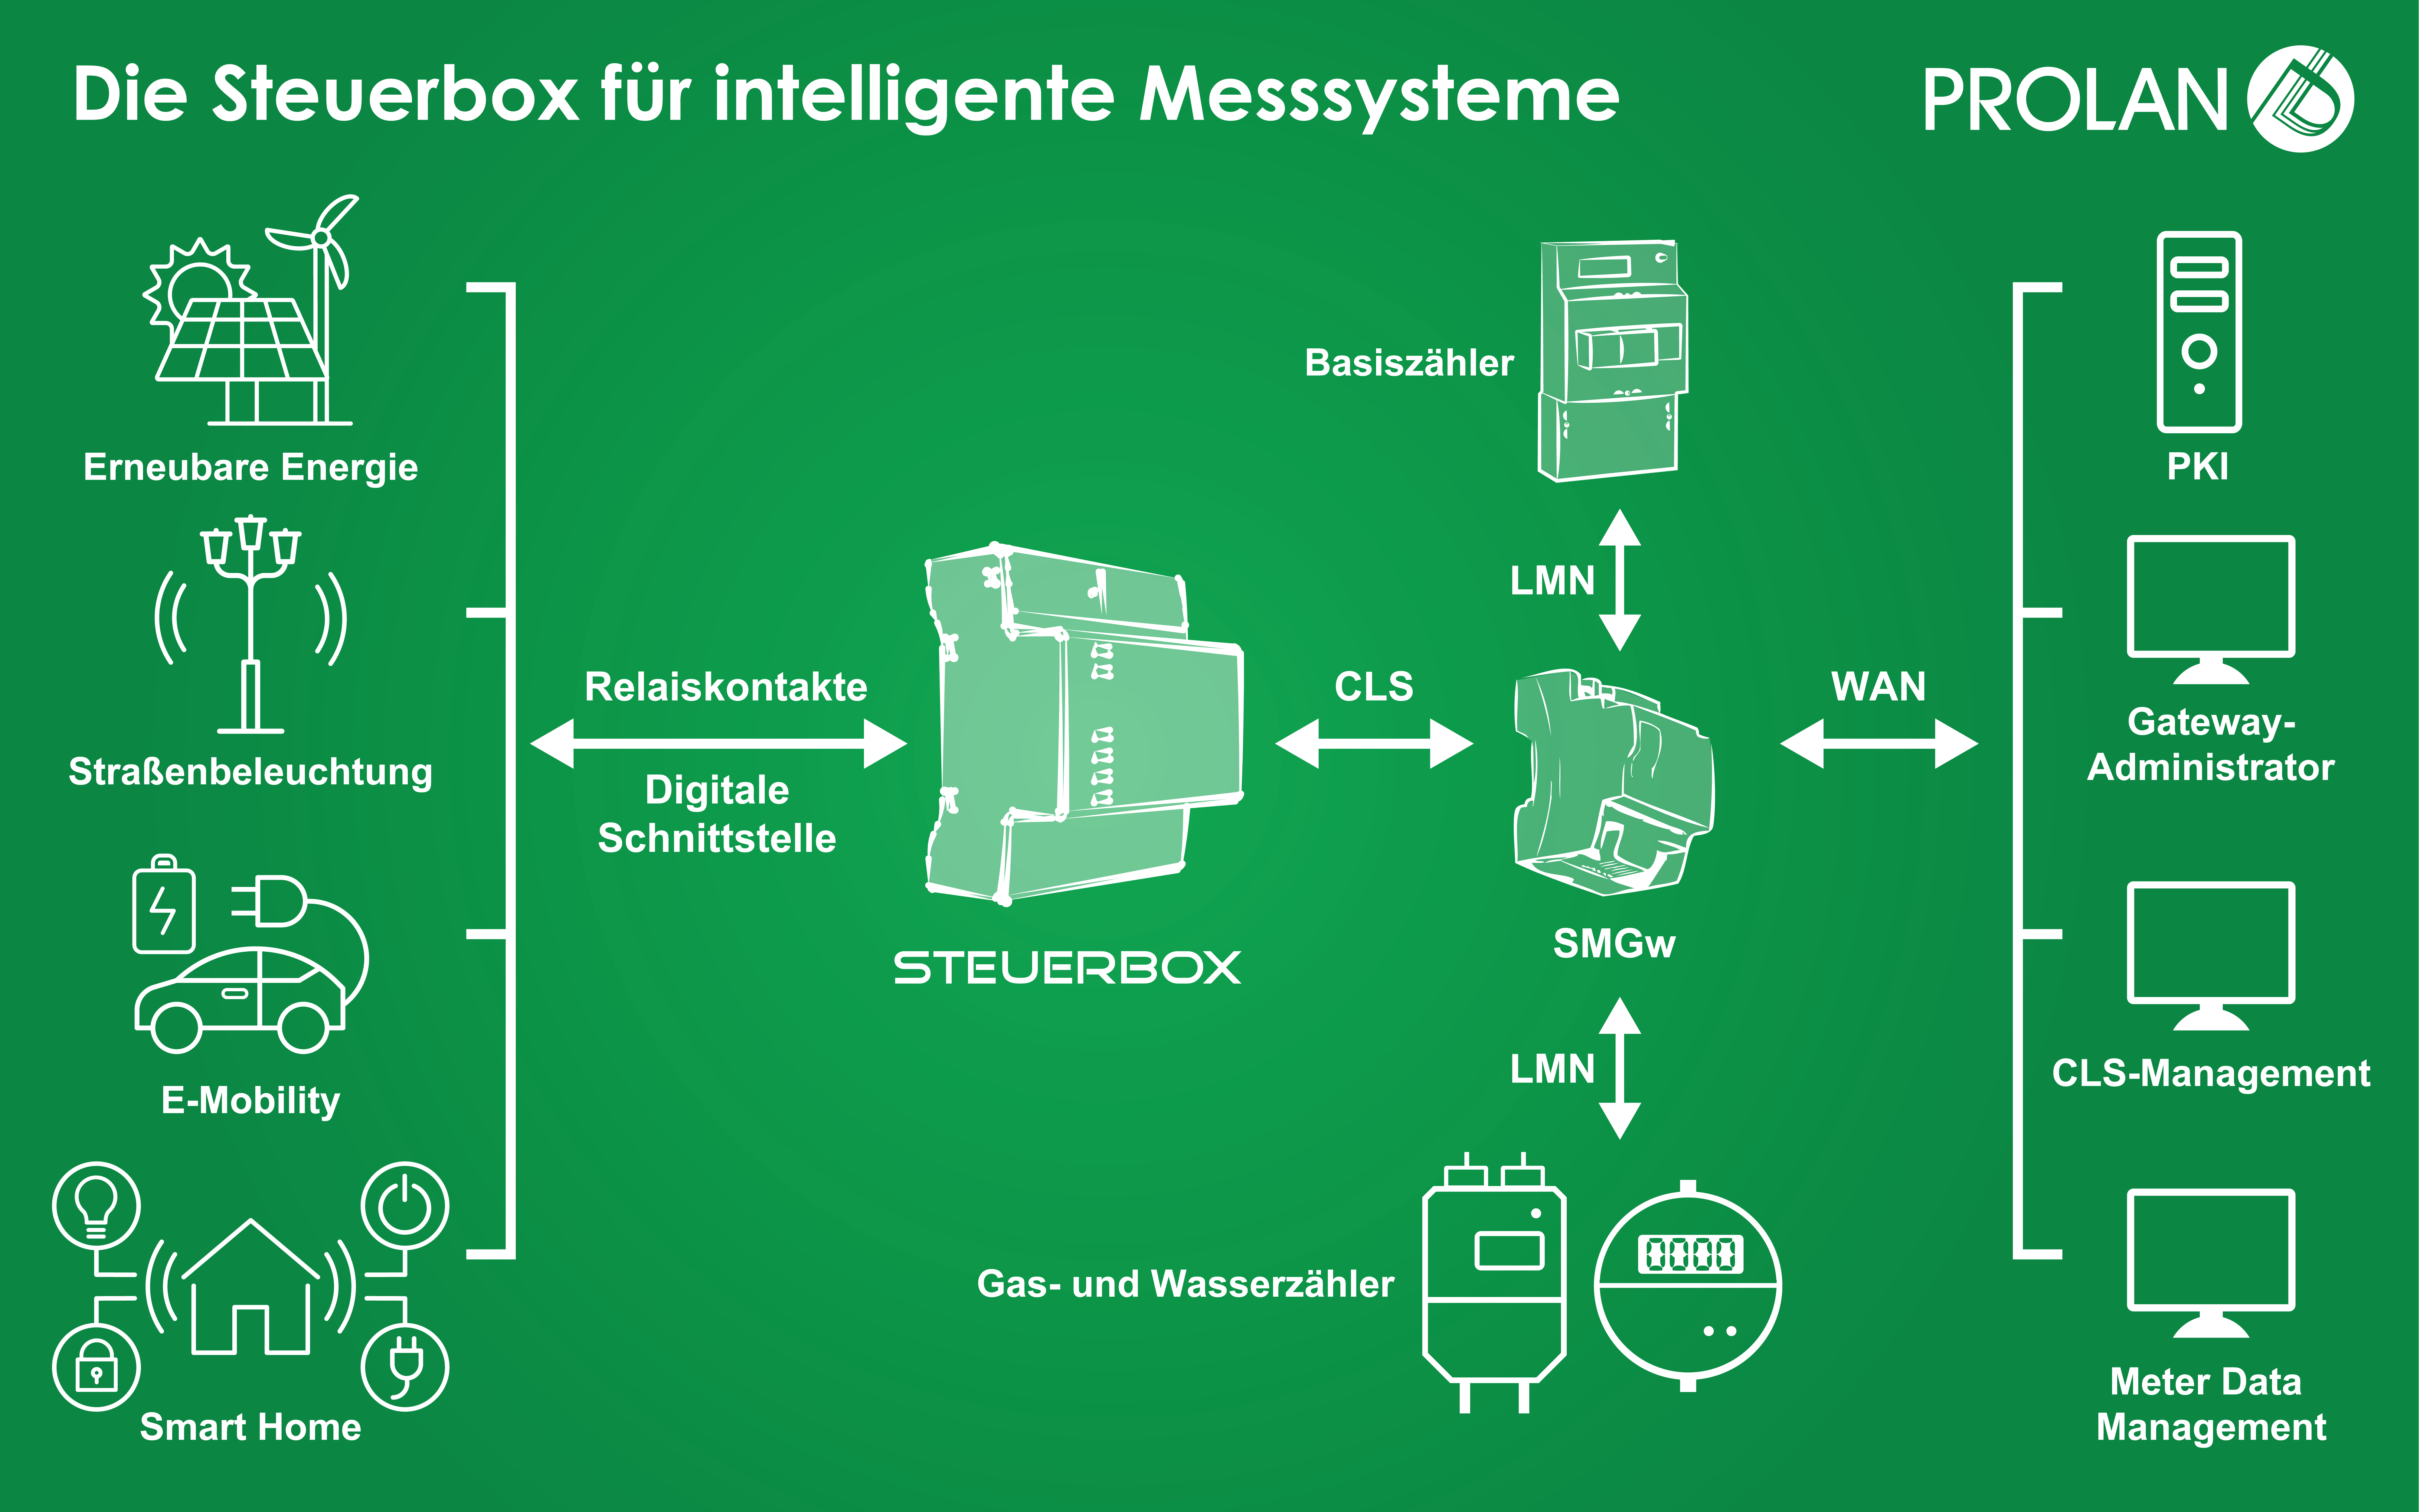 STEUERBOX SYSTEM